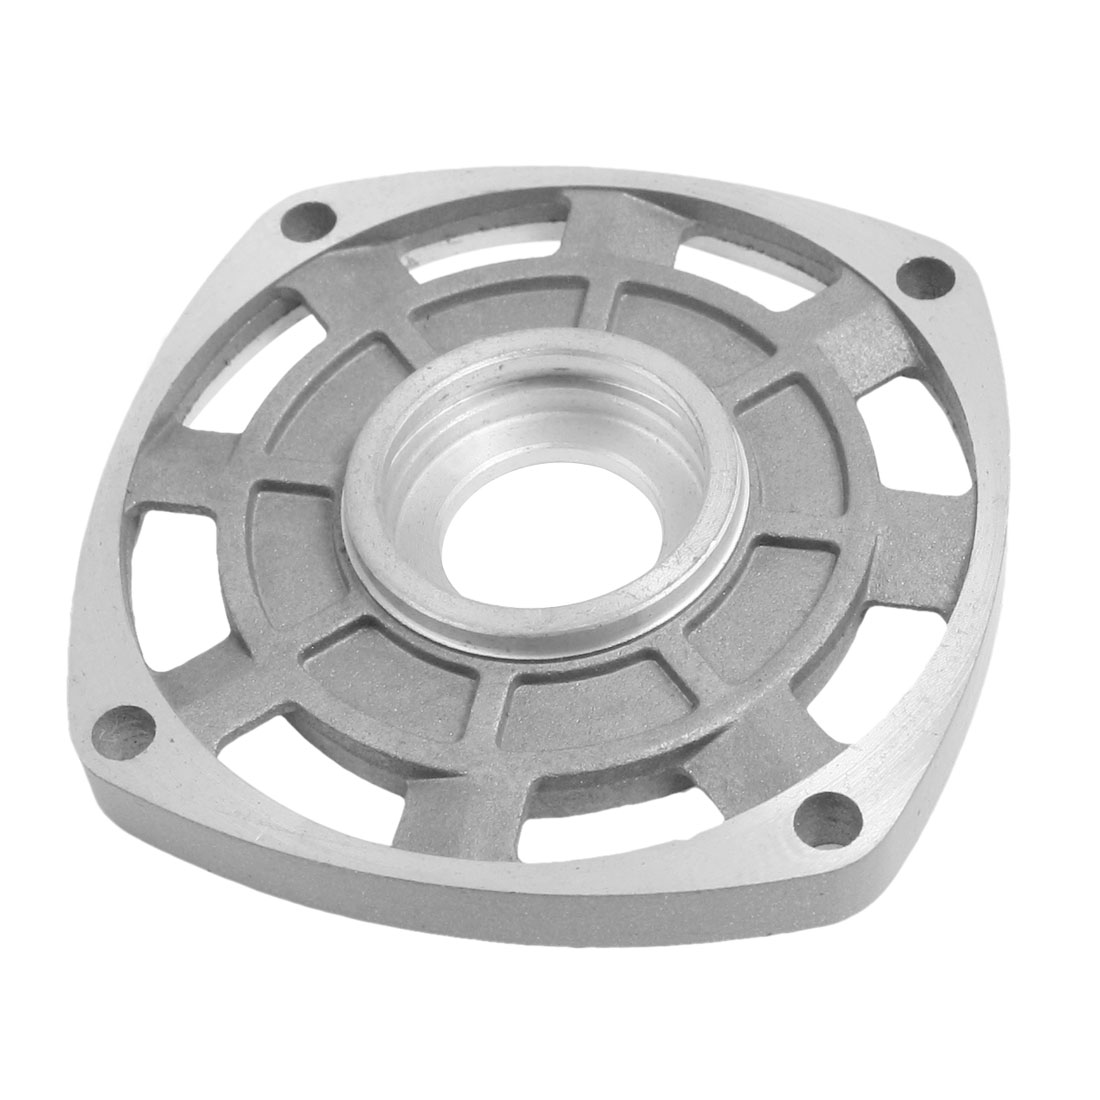 Silver Tone Aluminum Component Cover for Makite 9553NB 9556NB Angle Grinder